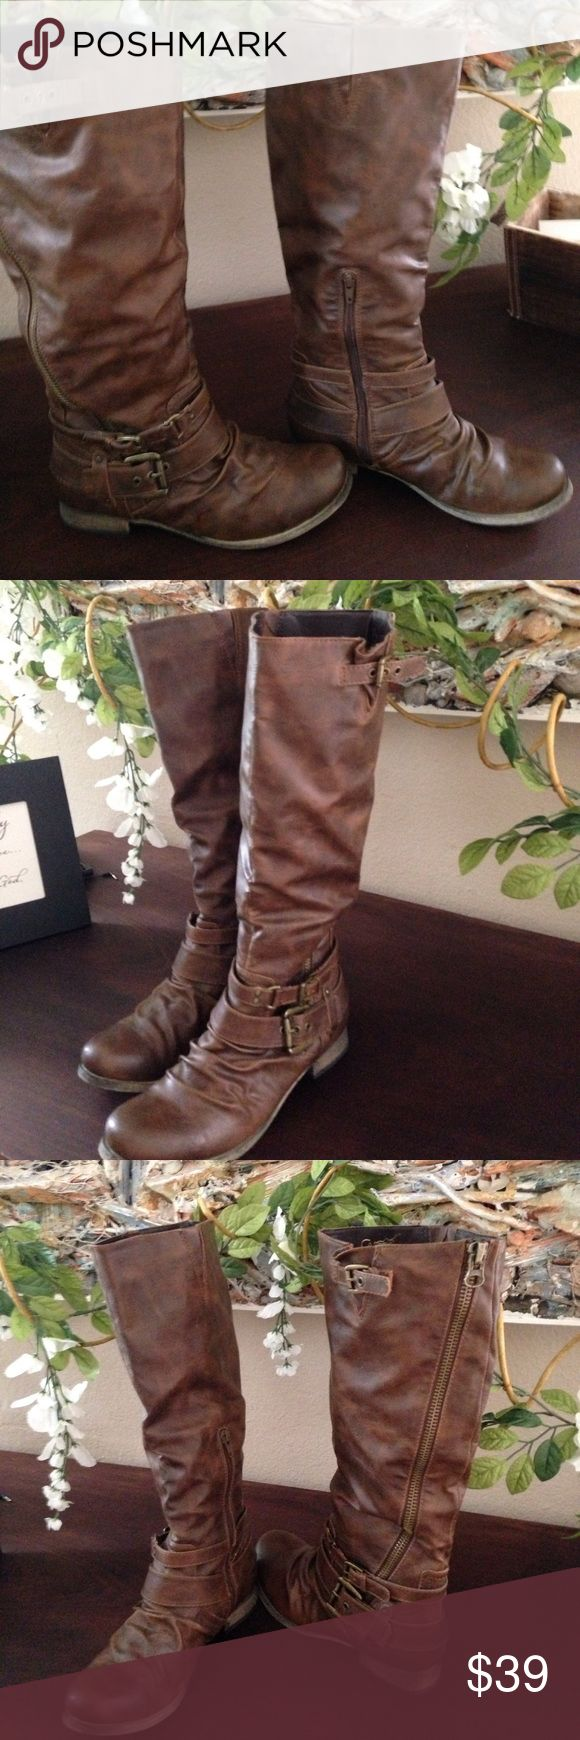 Carlos boot Cute with evening summer dress etc. great boot, clean ! Carlos Santana Shoes Ankle Boots & Booties